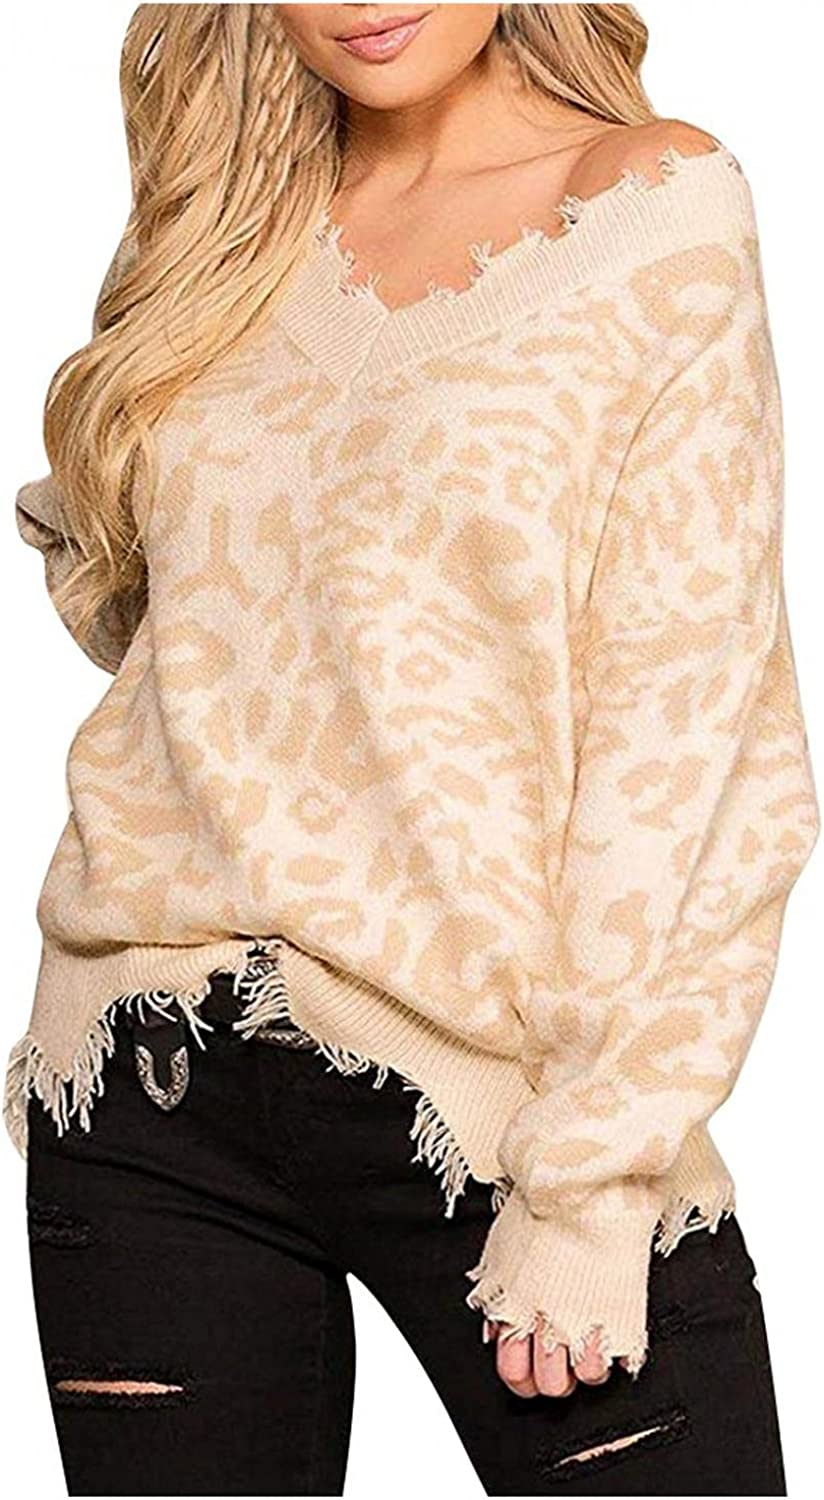 FGDJEE Pullover Sweaters for Women Sexy Casual Leopard Print Ripped V Neck Distressed Knit Pullover Jumper Tops